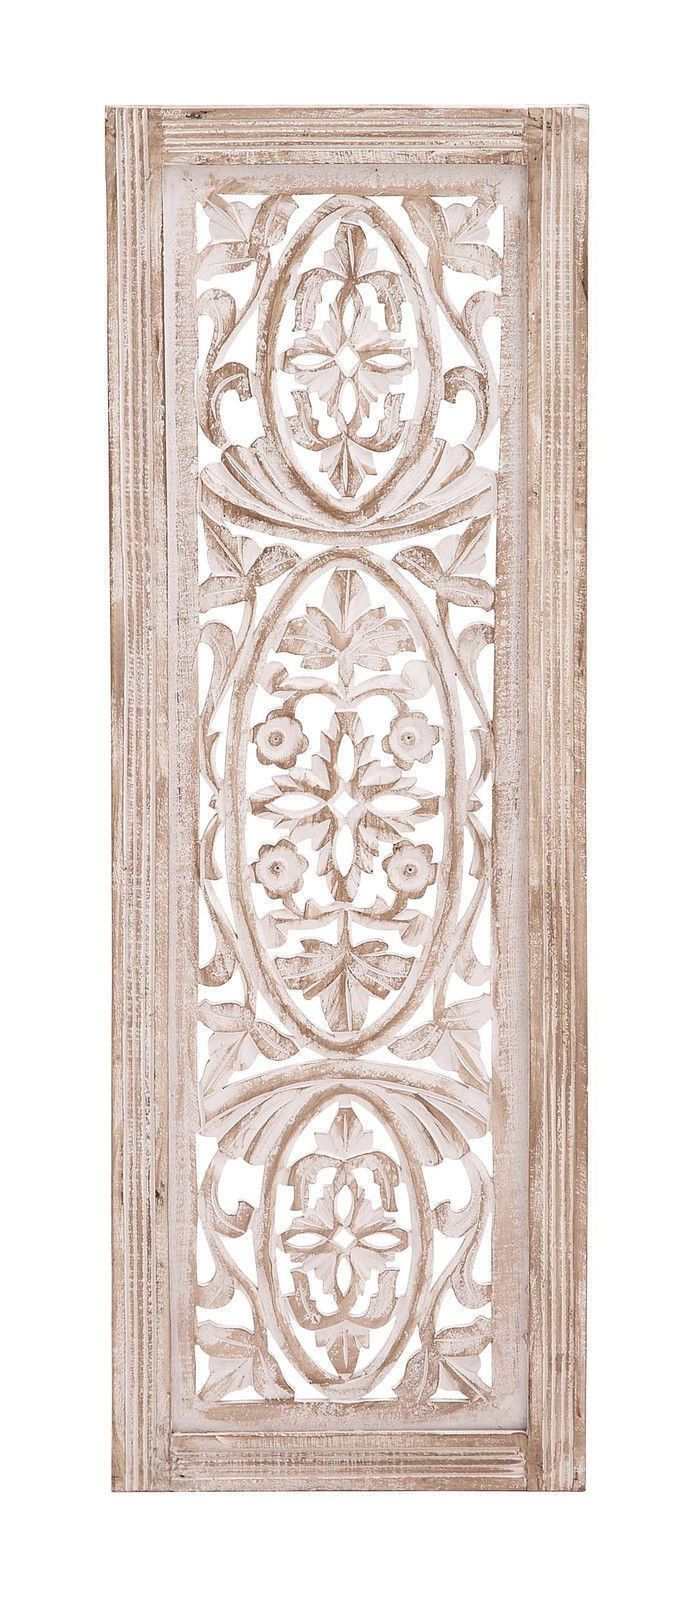 Carved Wood Wall Decor White : Best ideas about carved wood wall art on